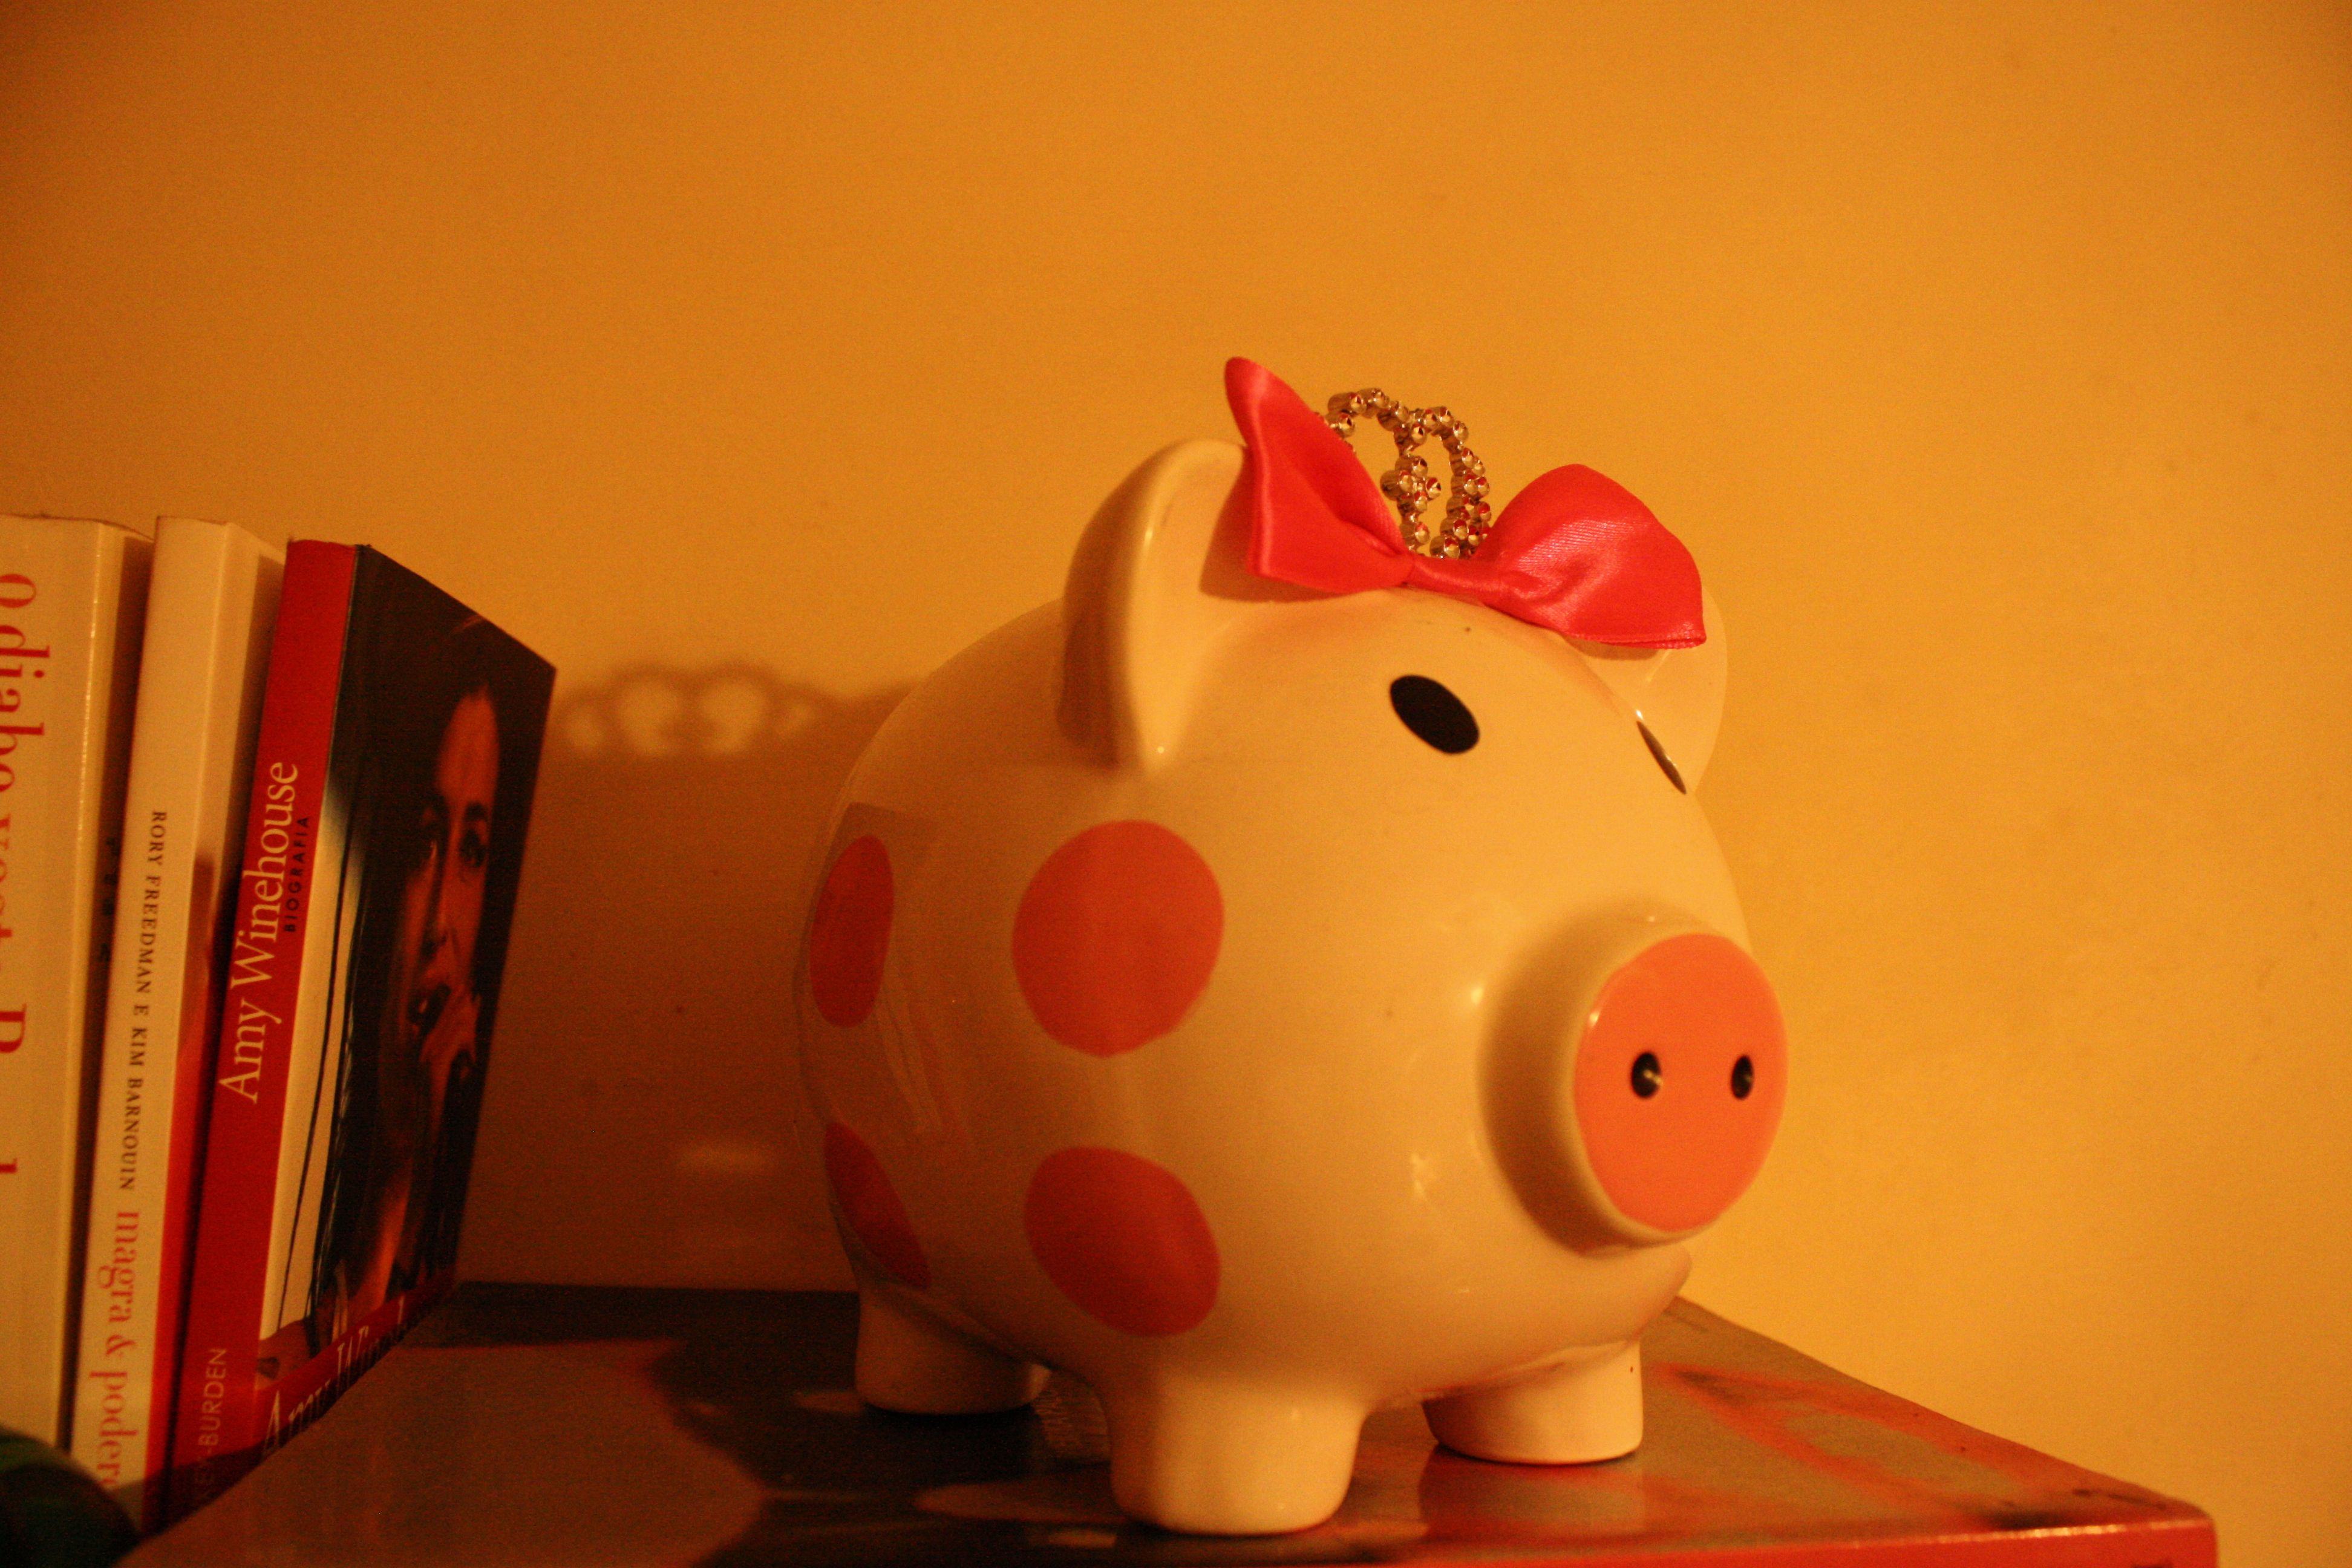 My pig collection - NY 2